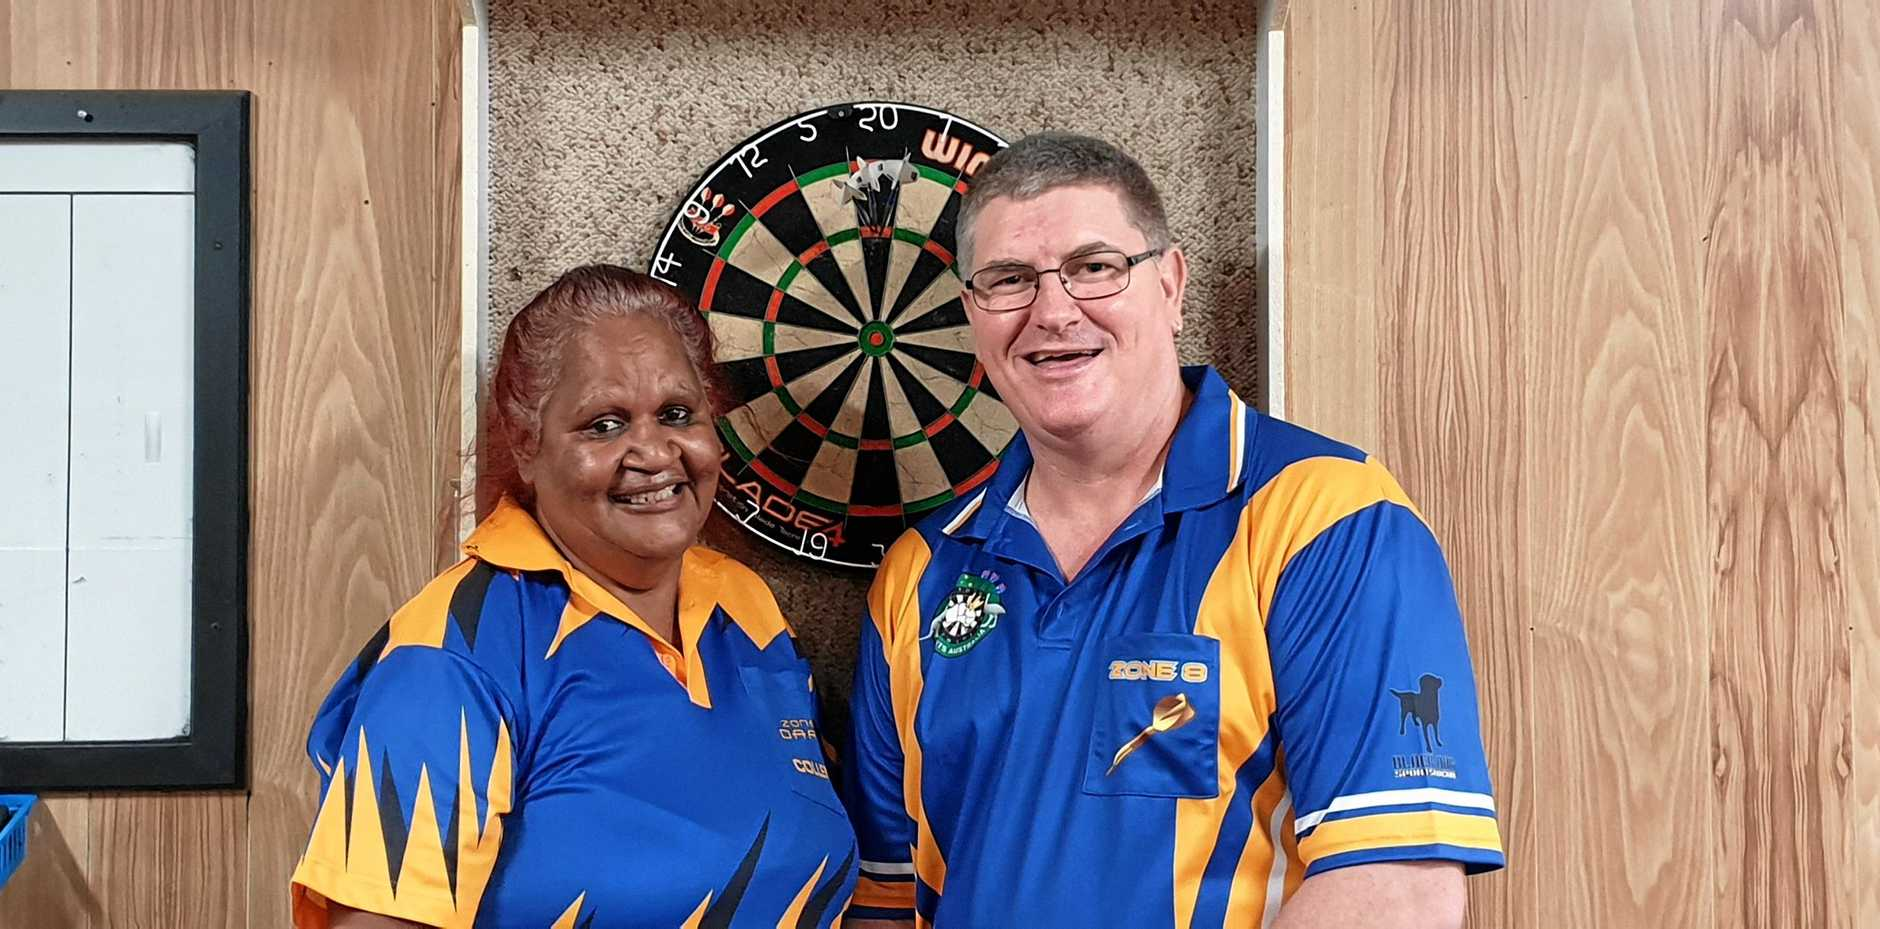 ON TARGET: Margaret Smallwood and Simon de Git will be heading off to Brisbane on the May long weekend after gaining selection in the CQ Zone 8 Darts team.